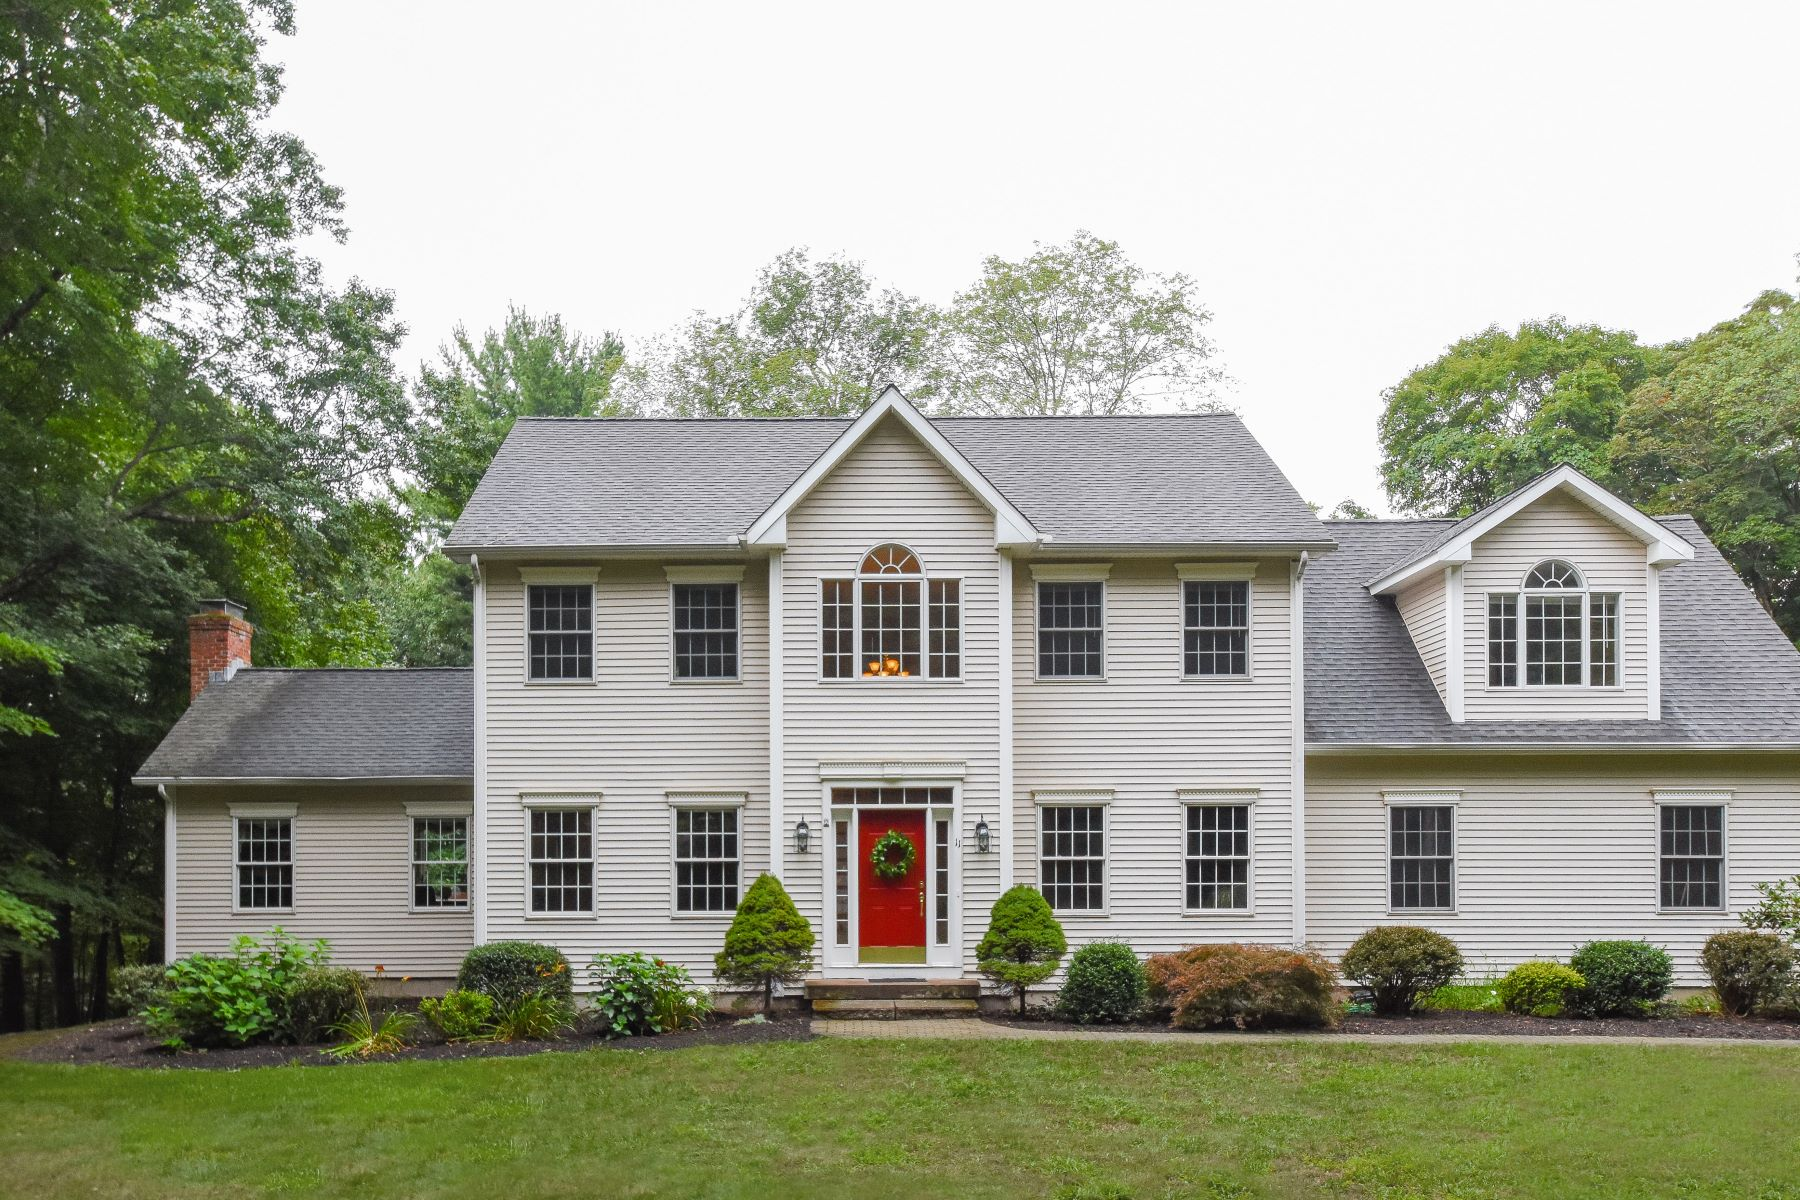 Single Family Homes for Sale at 11 Homestead Lane Canton, Connecticut 06019 United States